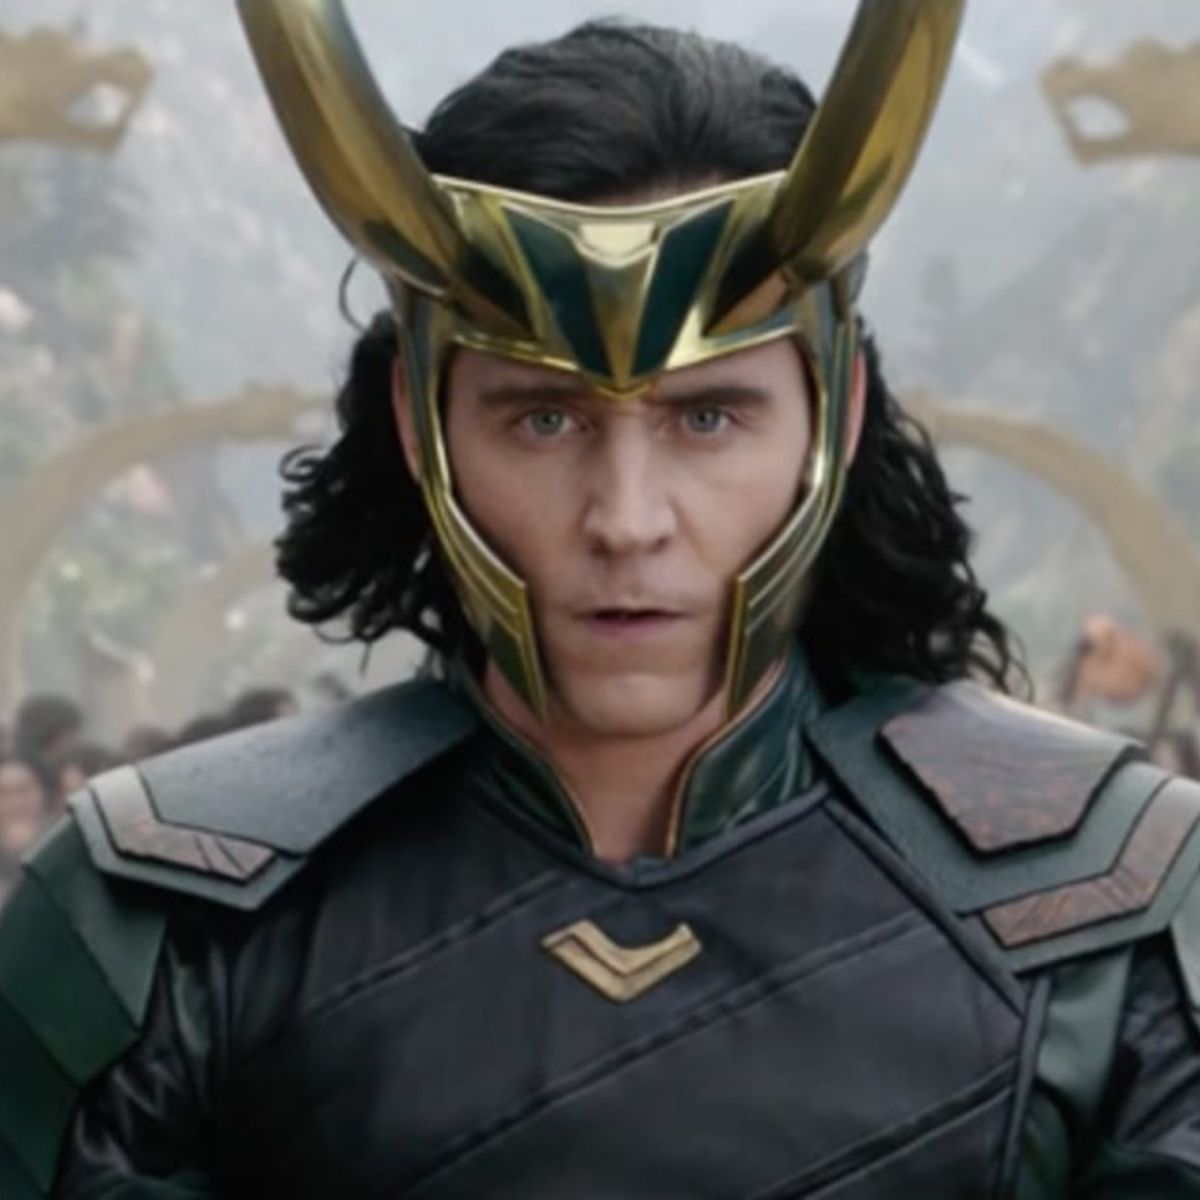 Disney's new streaming service to feature Loki and Scarlet Witch shows